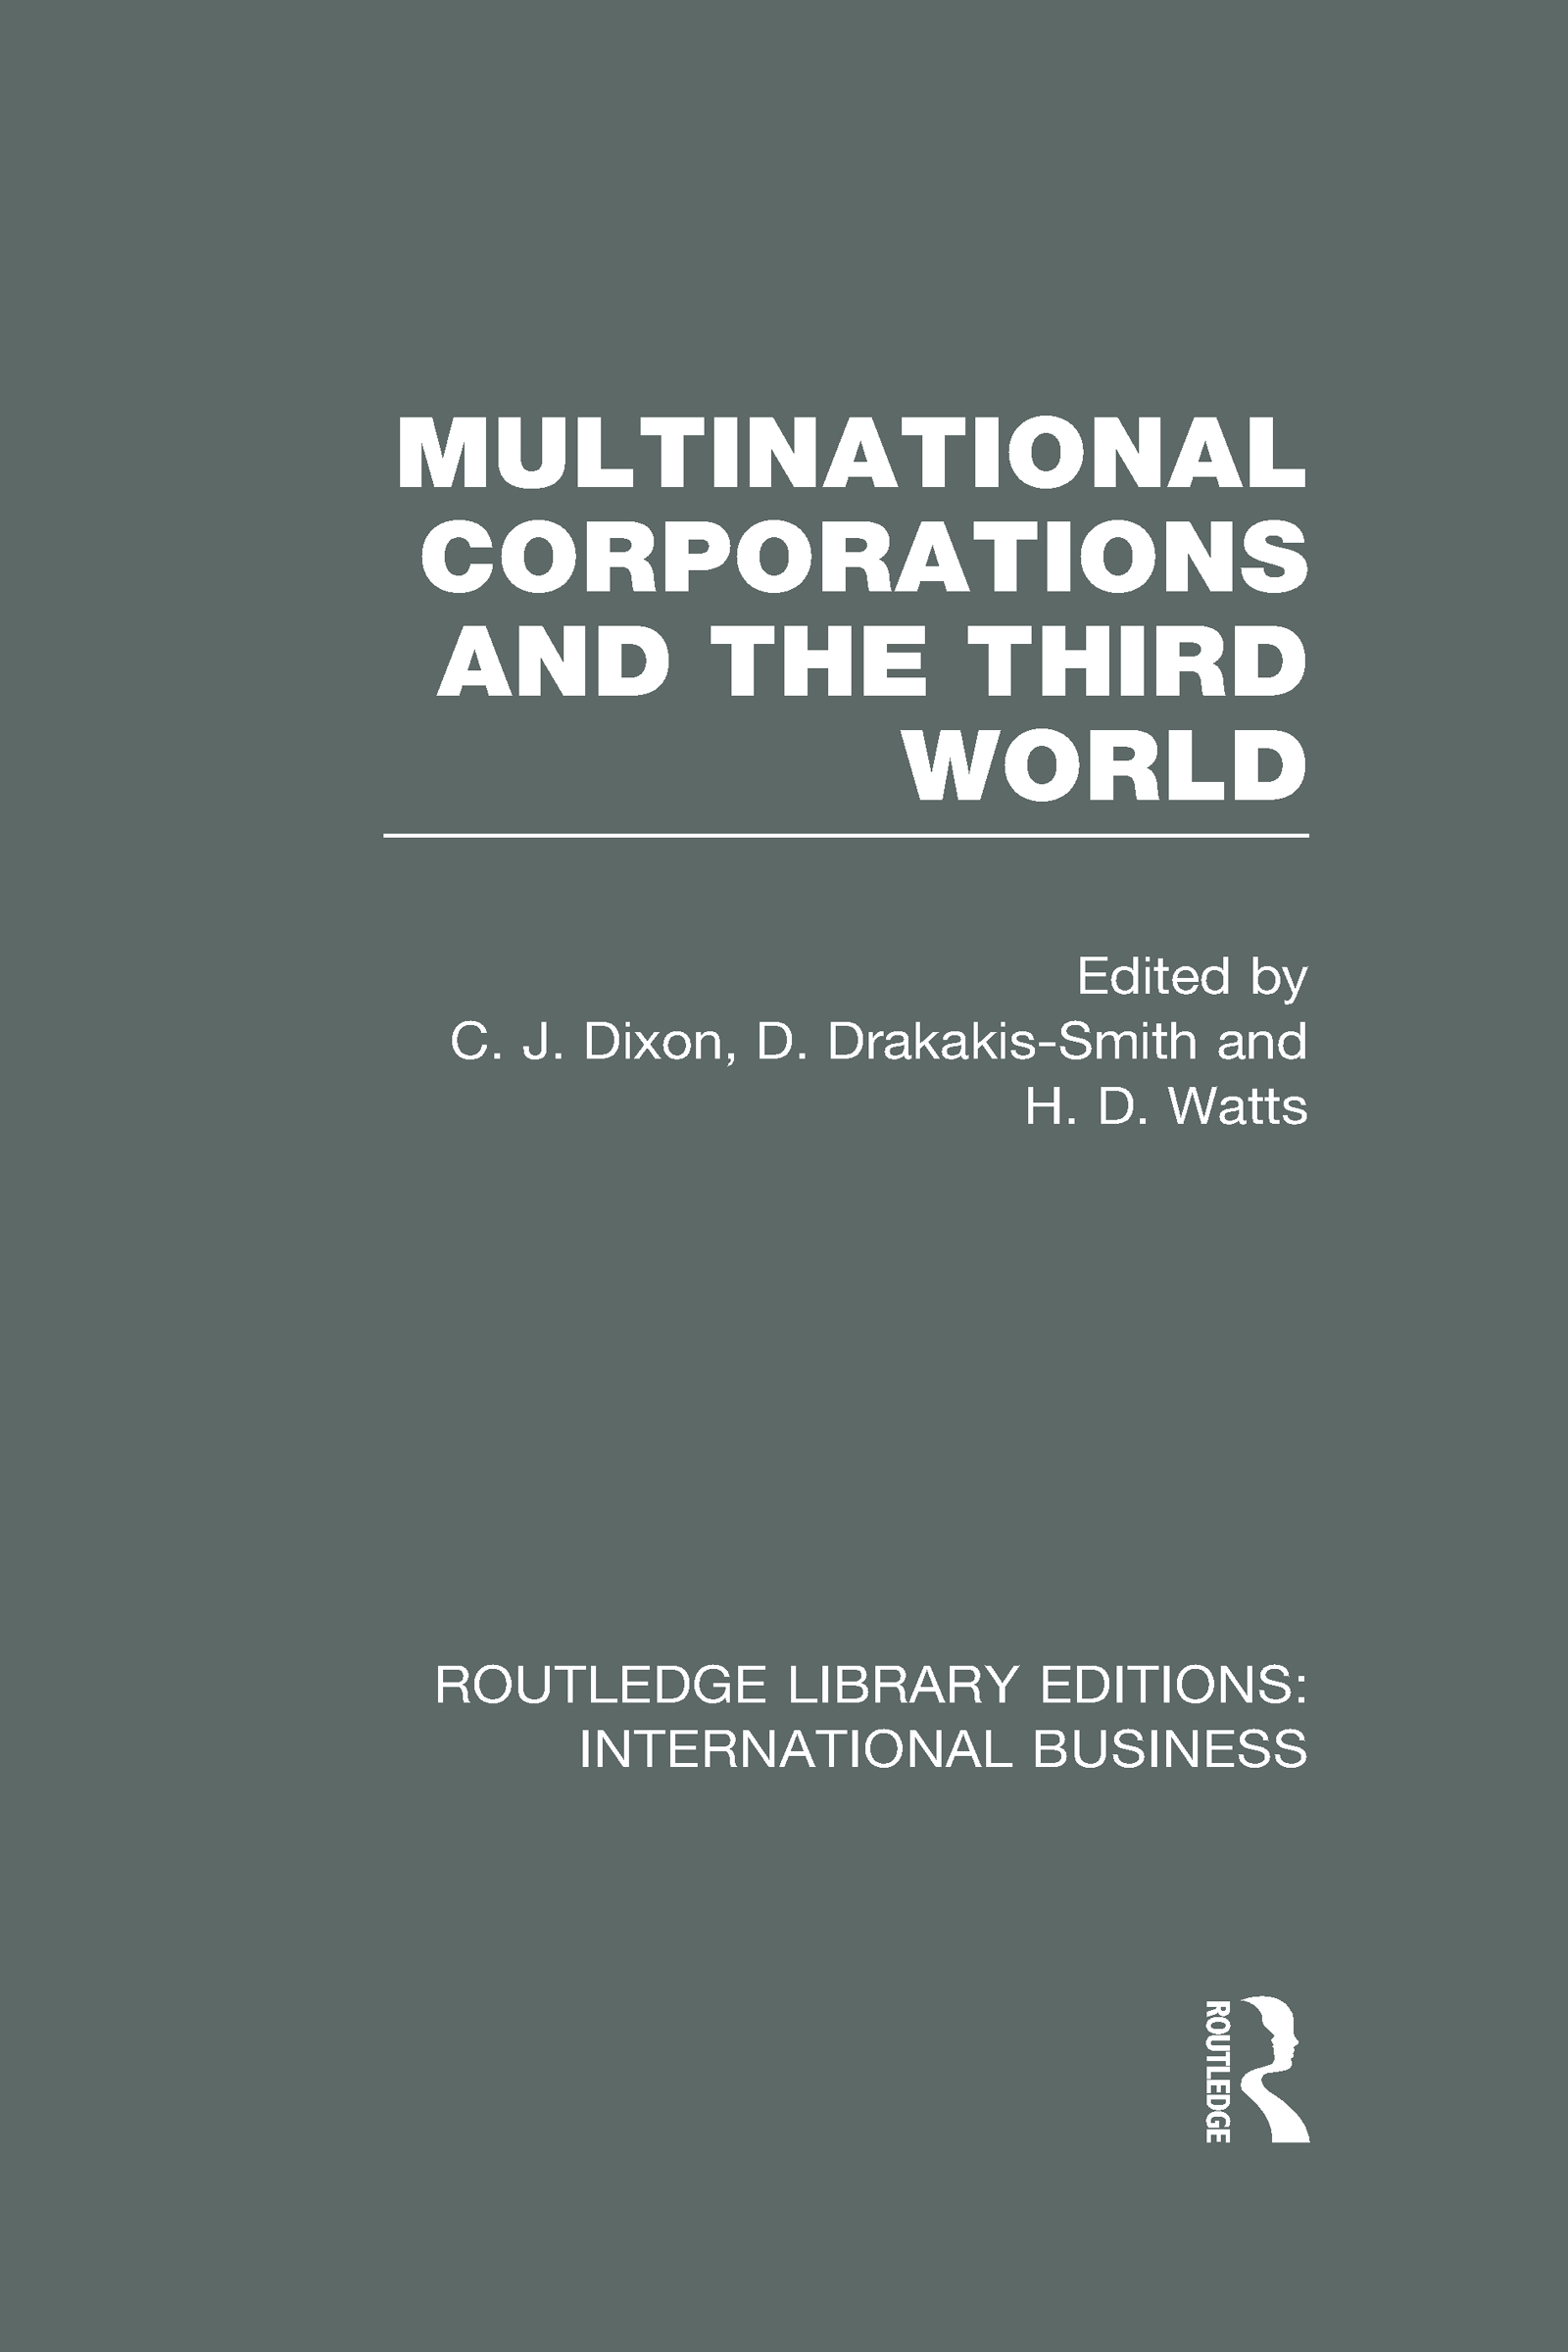 Multinational Corporations and the Third World (RLE International Business) (Hardback) book cover